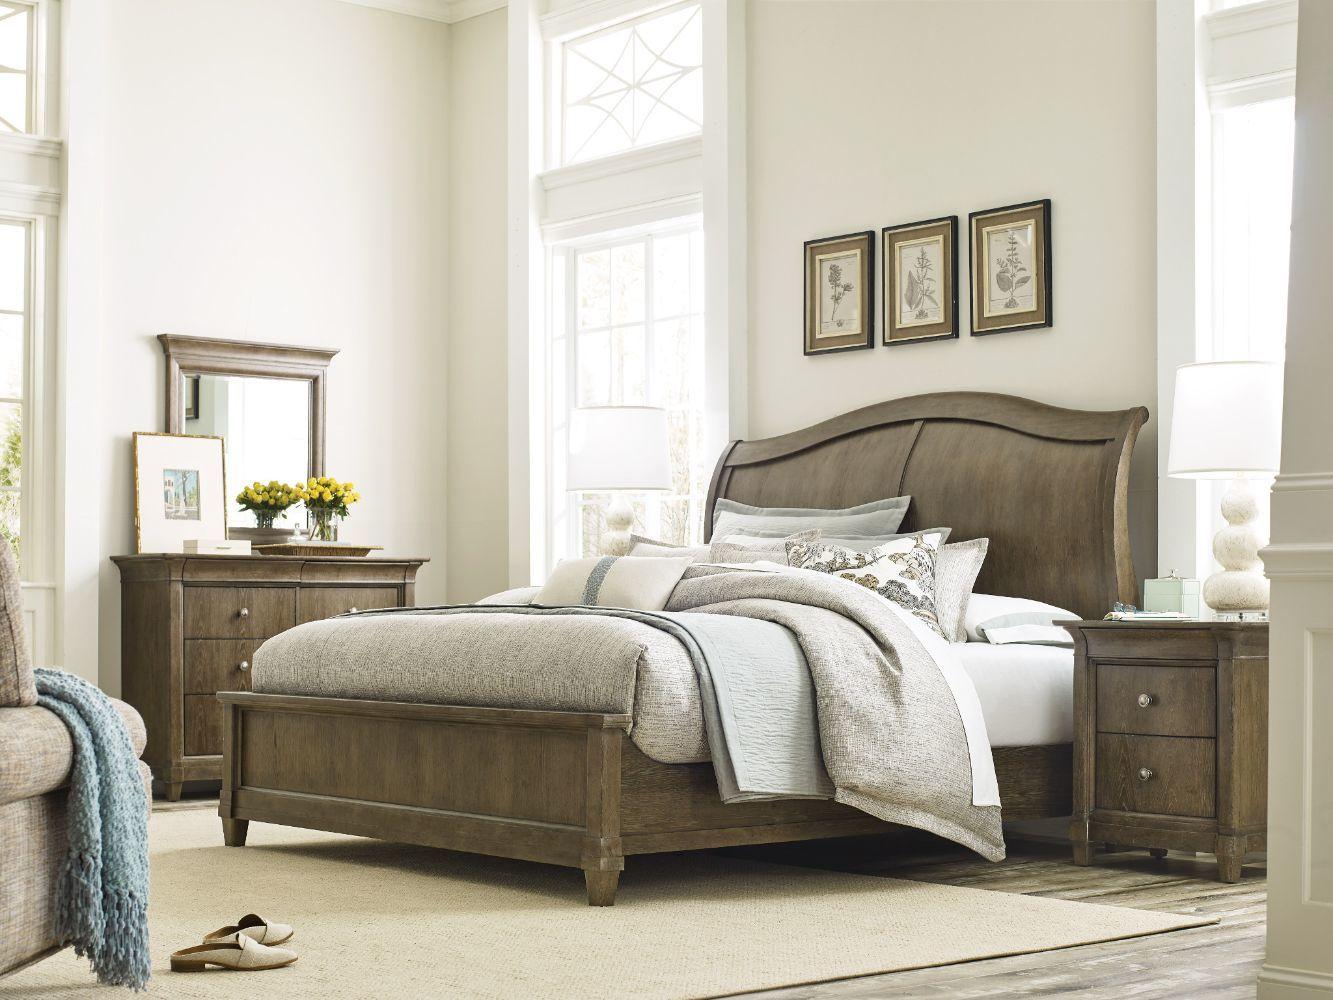 American Drew Anson Collection Bedroom Set Seigerman S Furniture